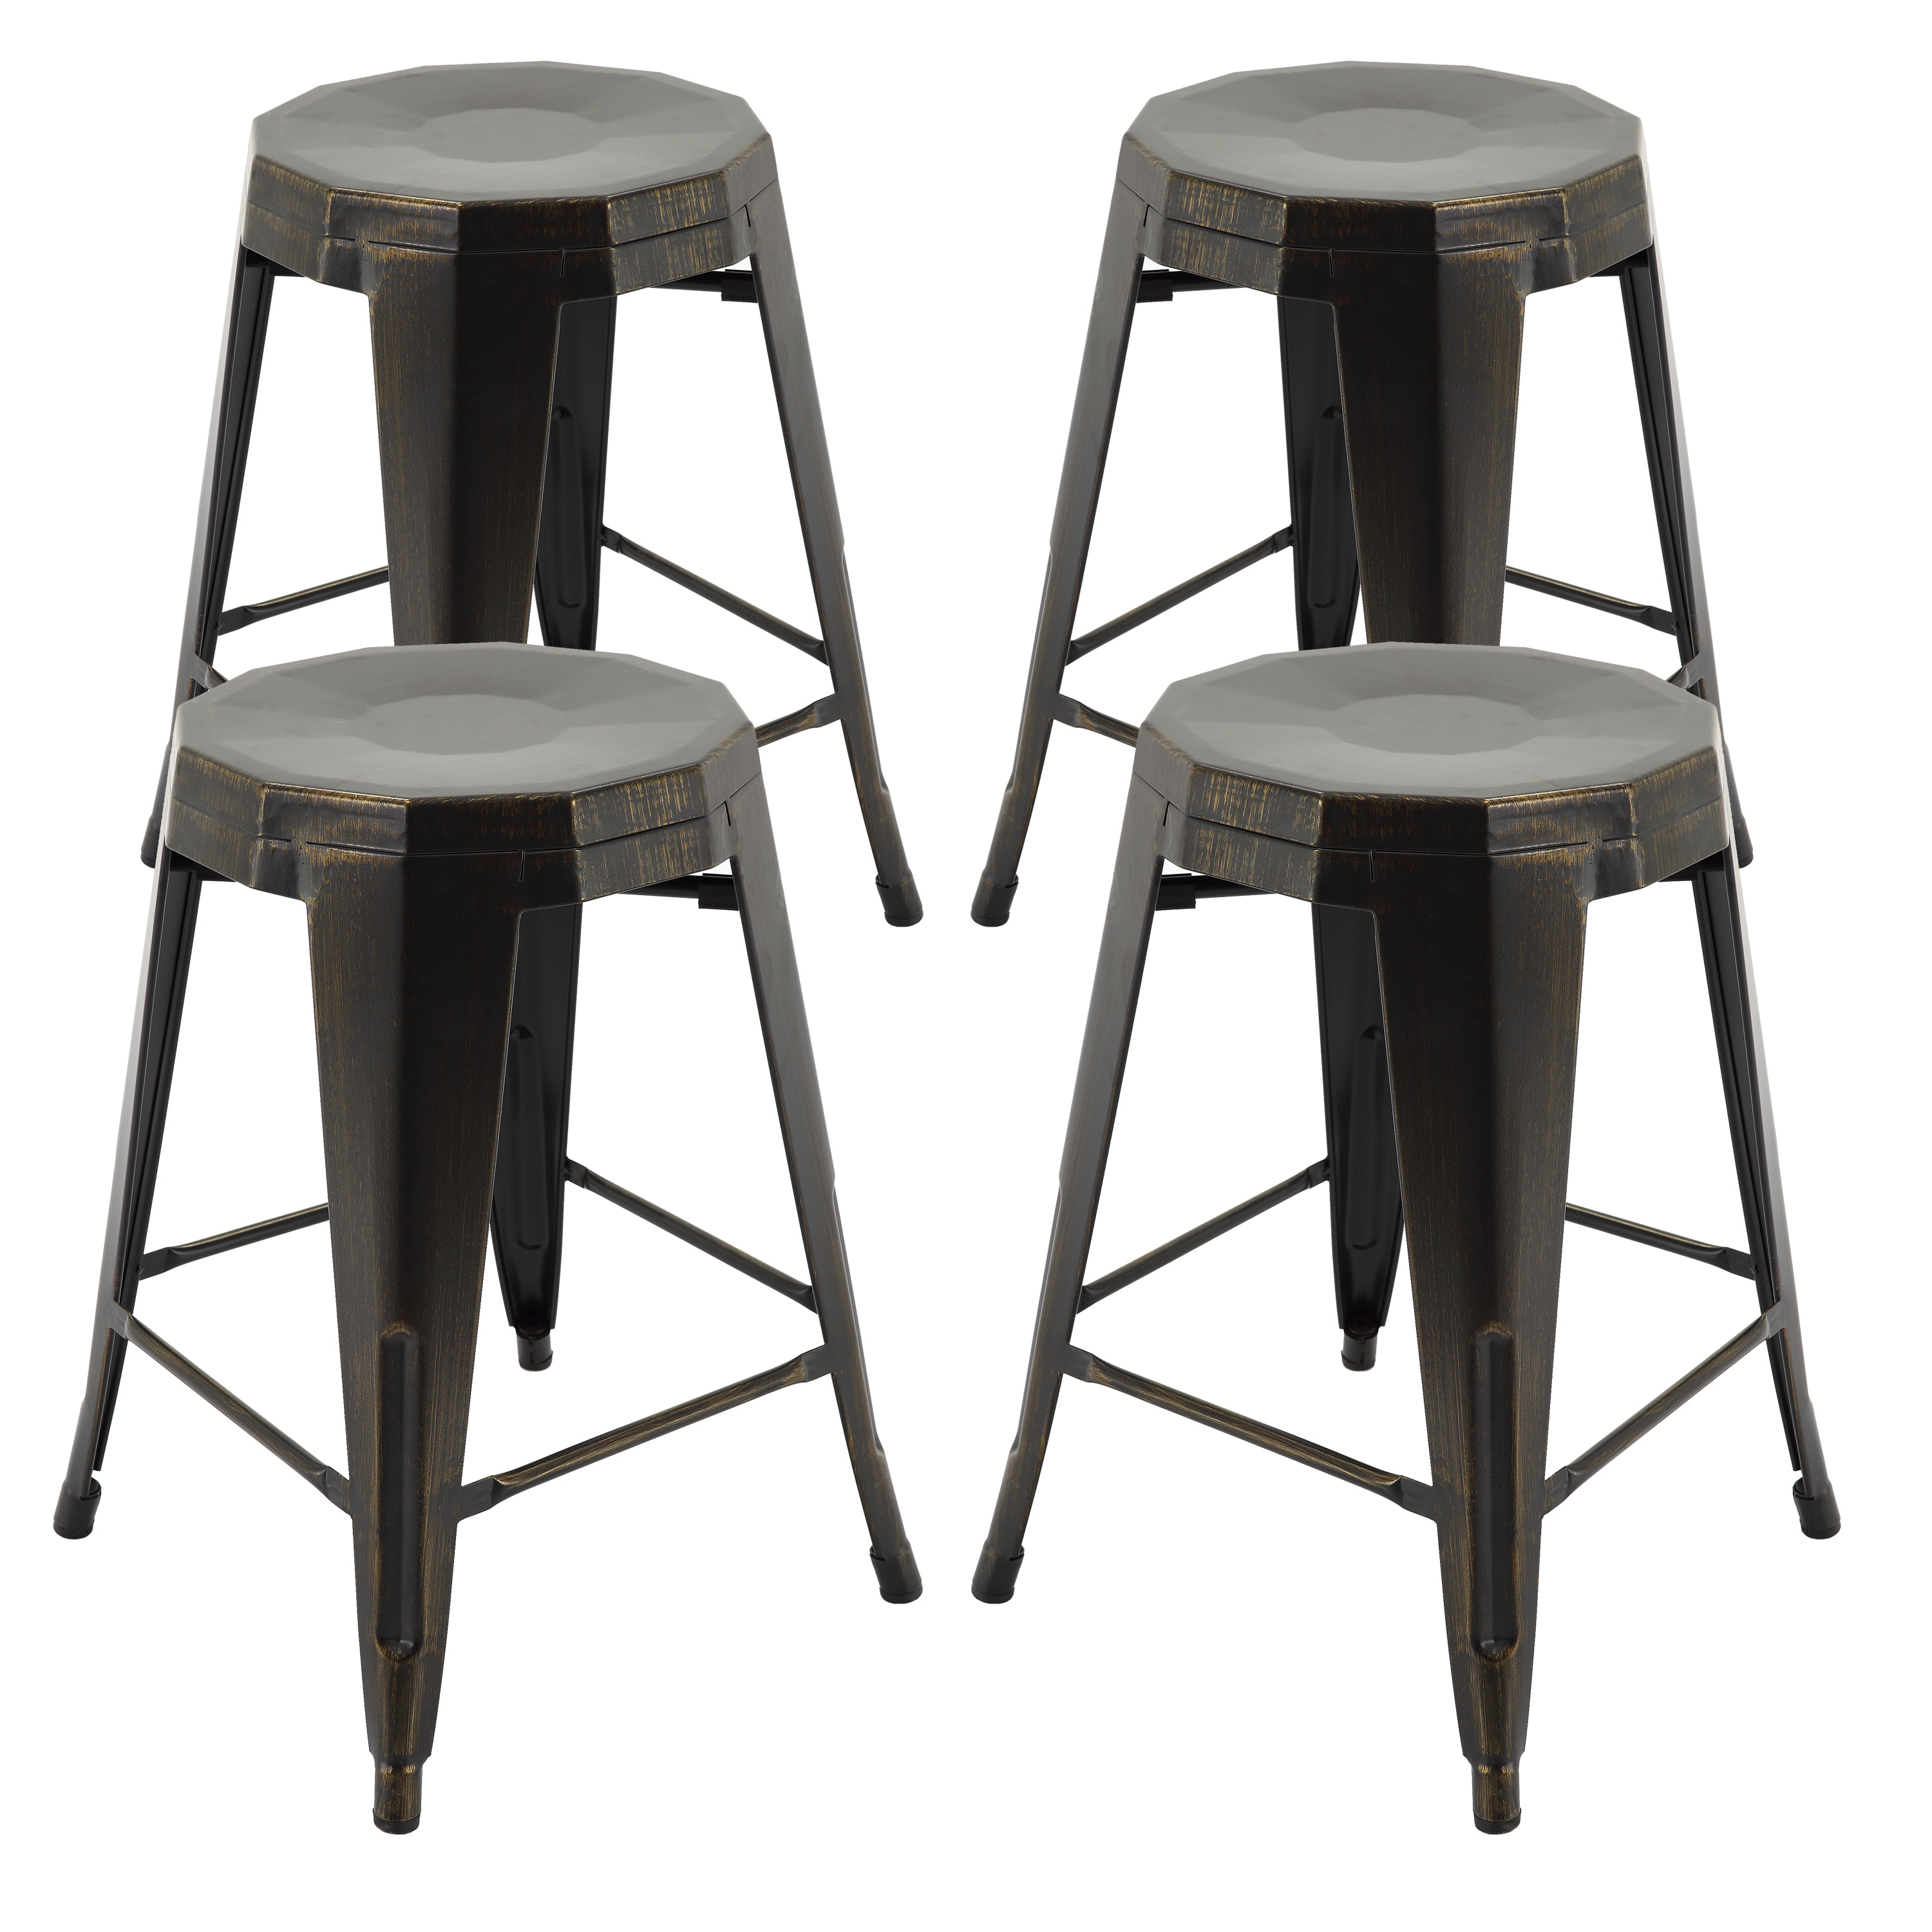 Vogue furniture direct metals 24 inch backless fully assembled barstools set of 4